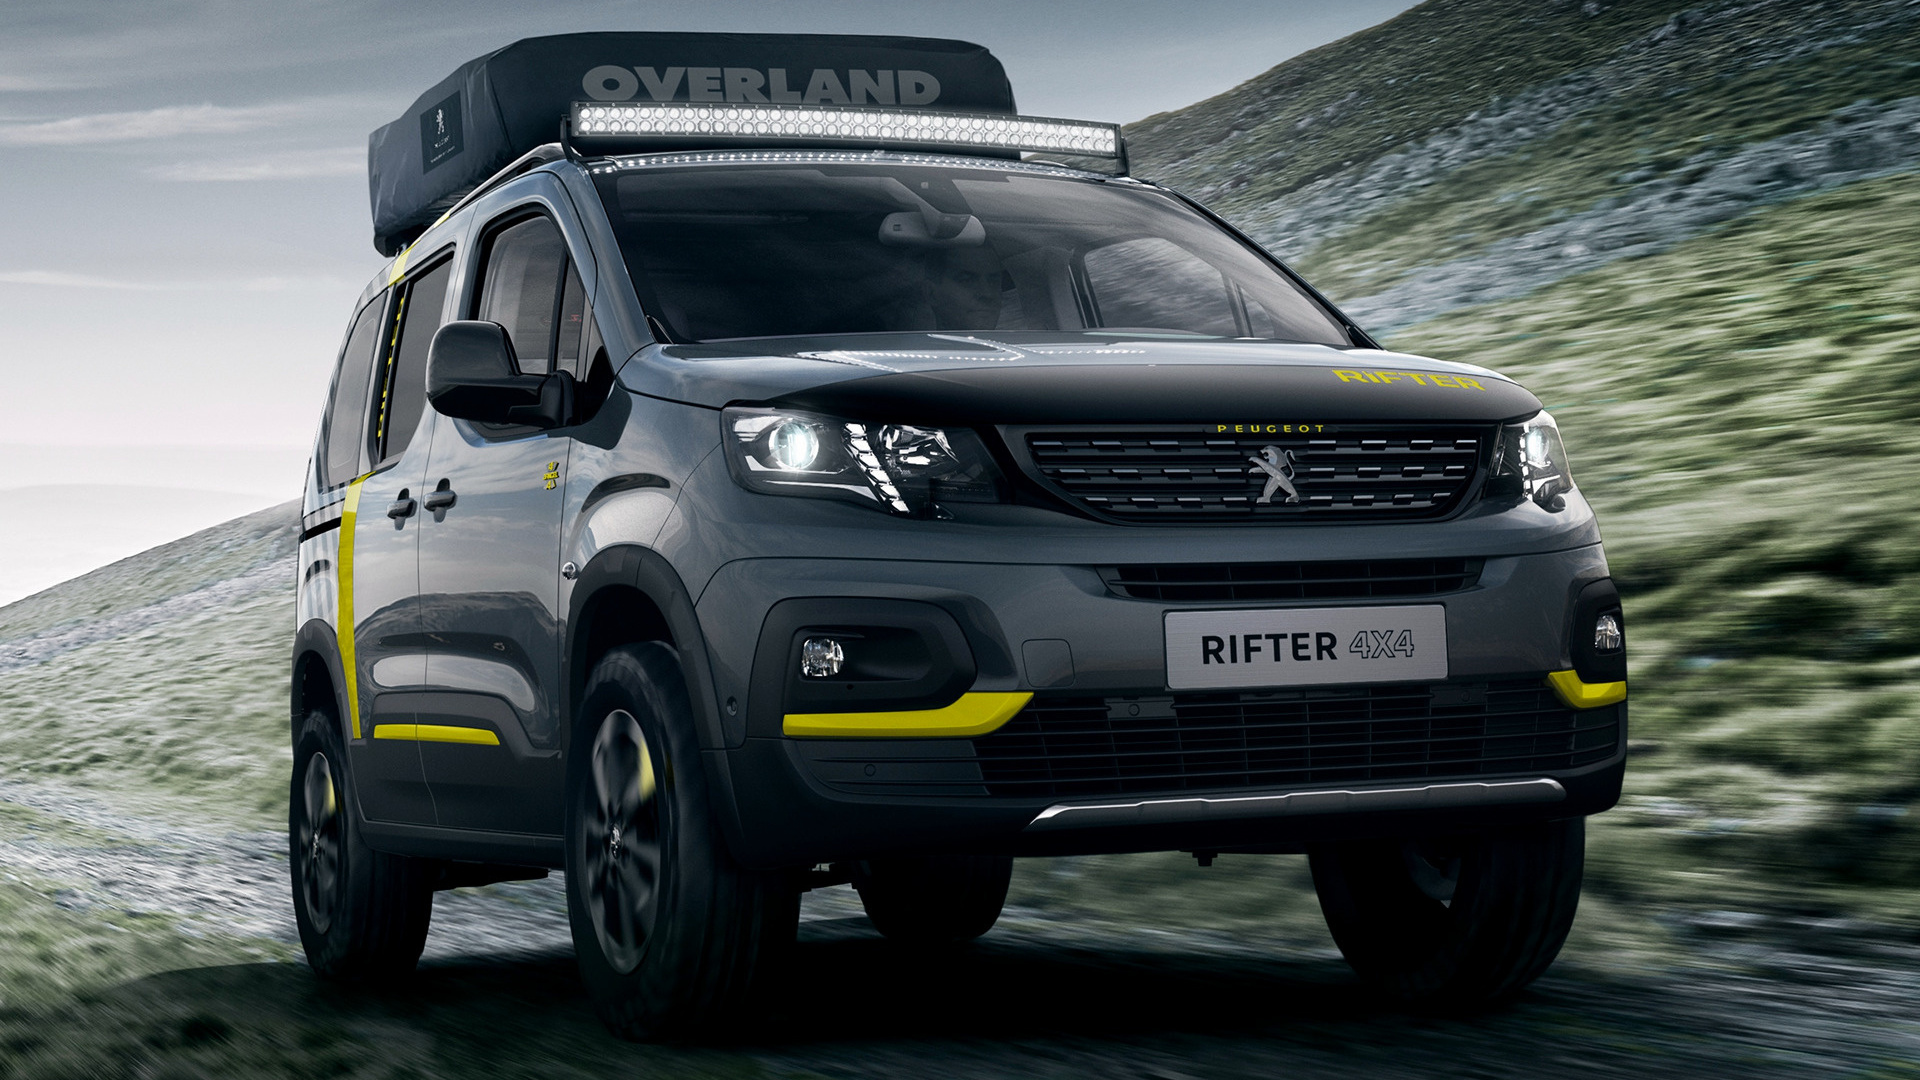 Peugeot Rifter 4x4 Concept (2018) Wallpapers and HD Images - Car Pixel